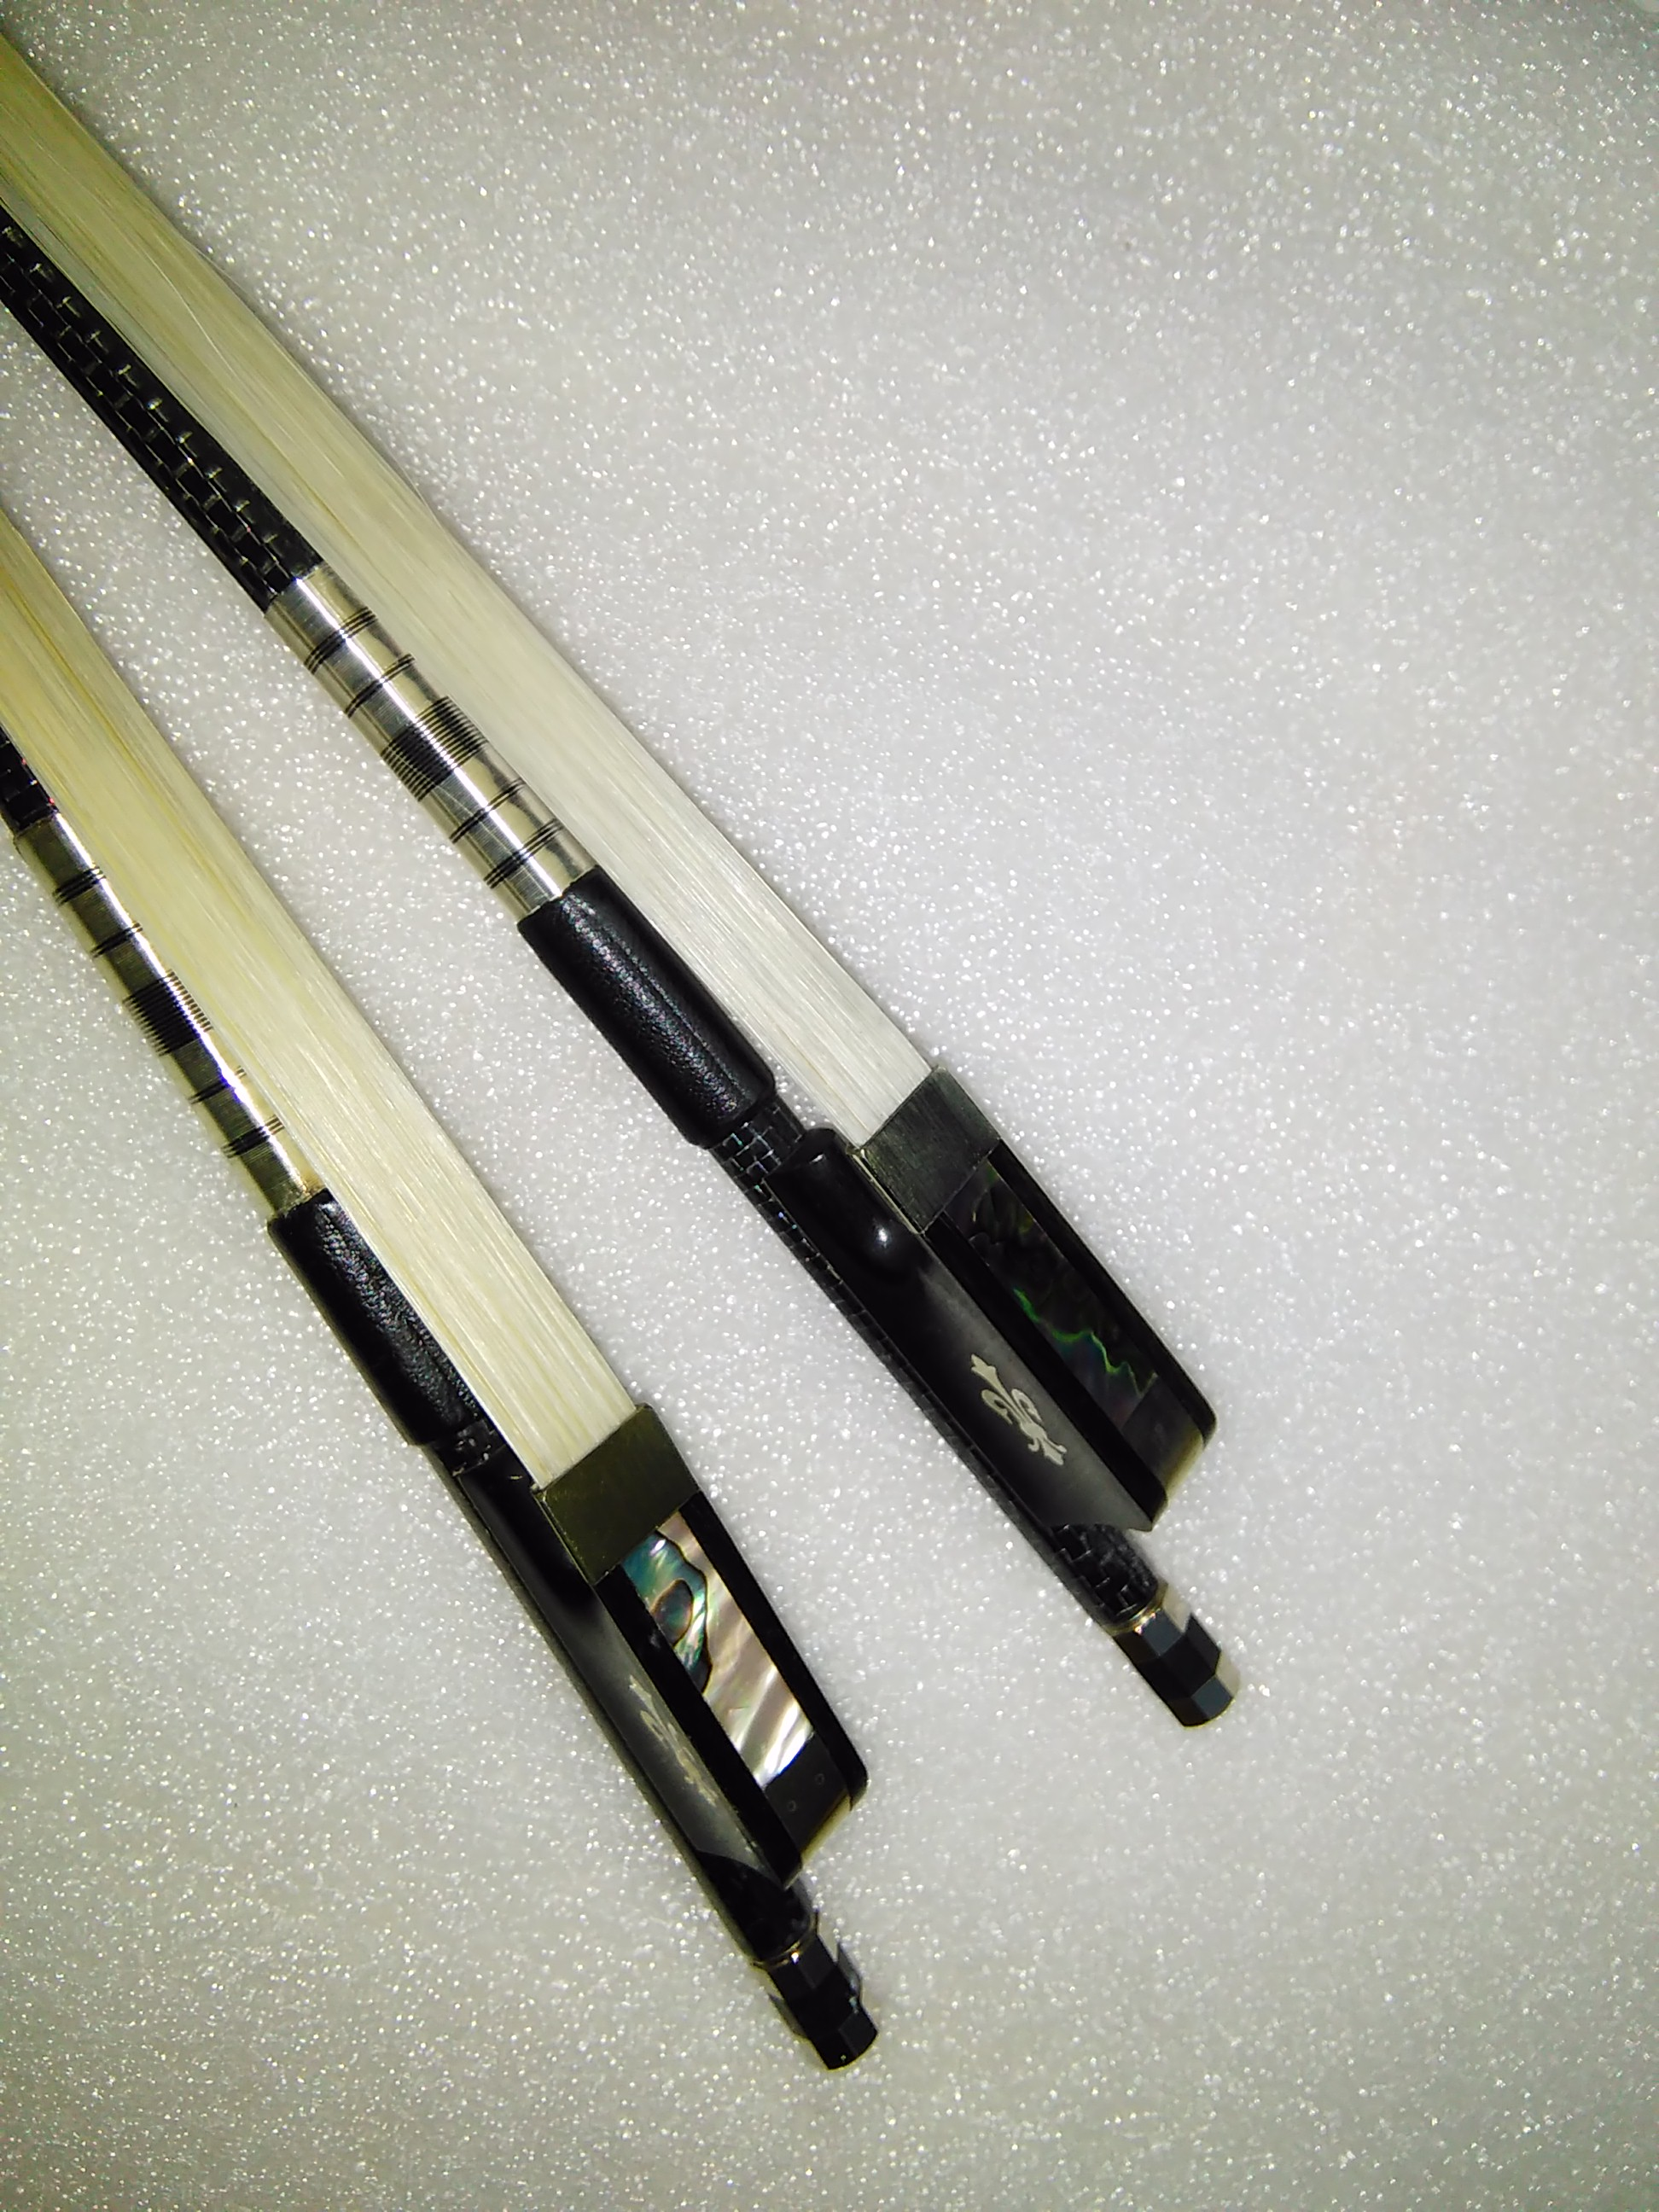 2 PCs Cello bow Carbon Fiber Cello bow with white bow hair ebony frog 4/4 one is silver wire inlay one is red wire inlay 1 pcs good 4 4 66 cello bow carbon fiber round stick ebony fro g high quality new dt